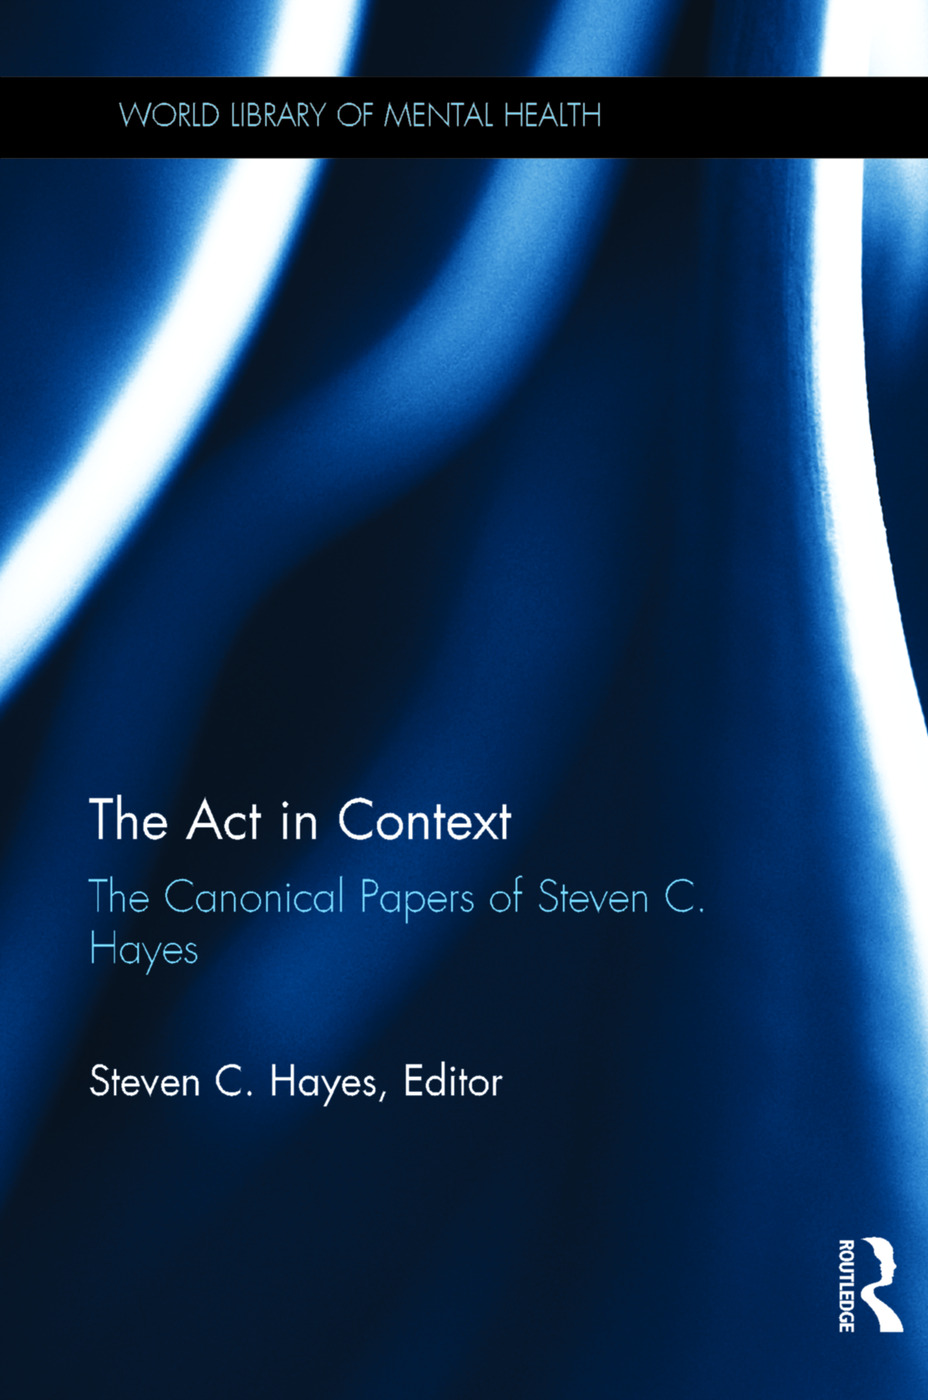 The Act in Context: The Canonical Papers of Steven C. Hayes book cover